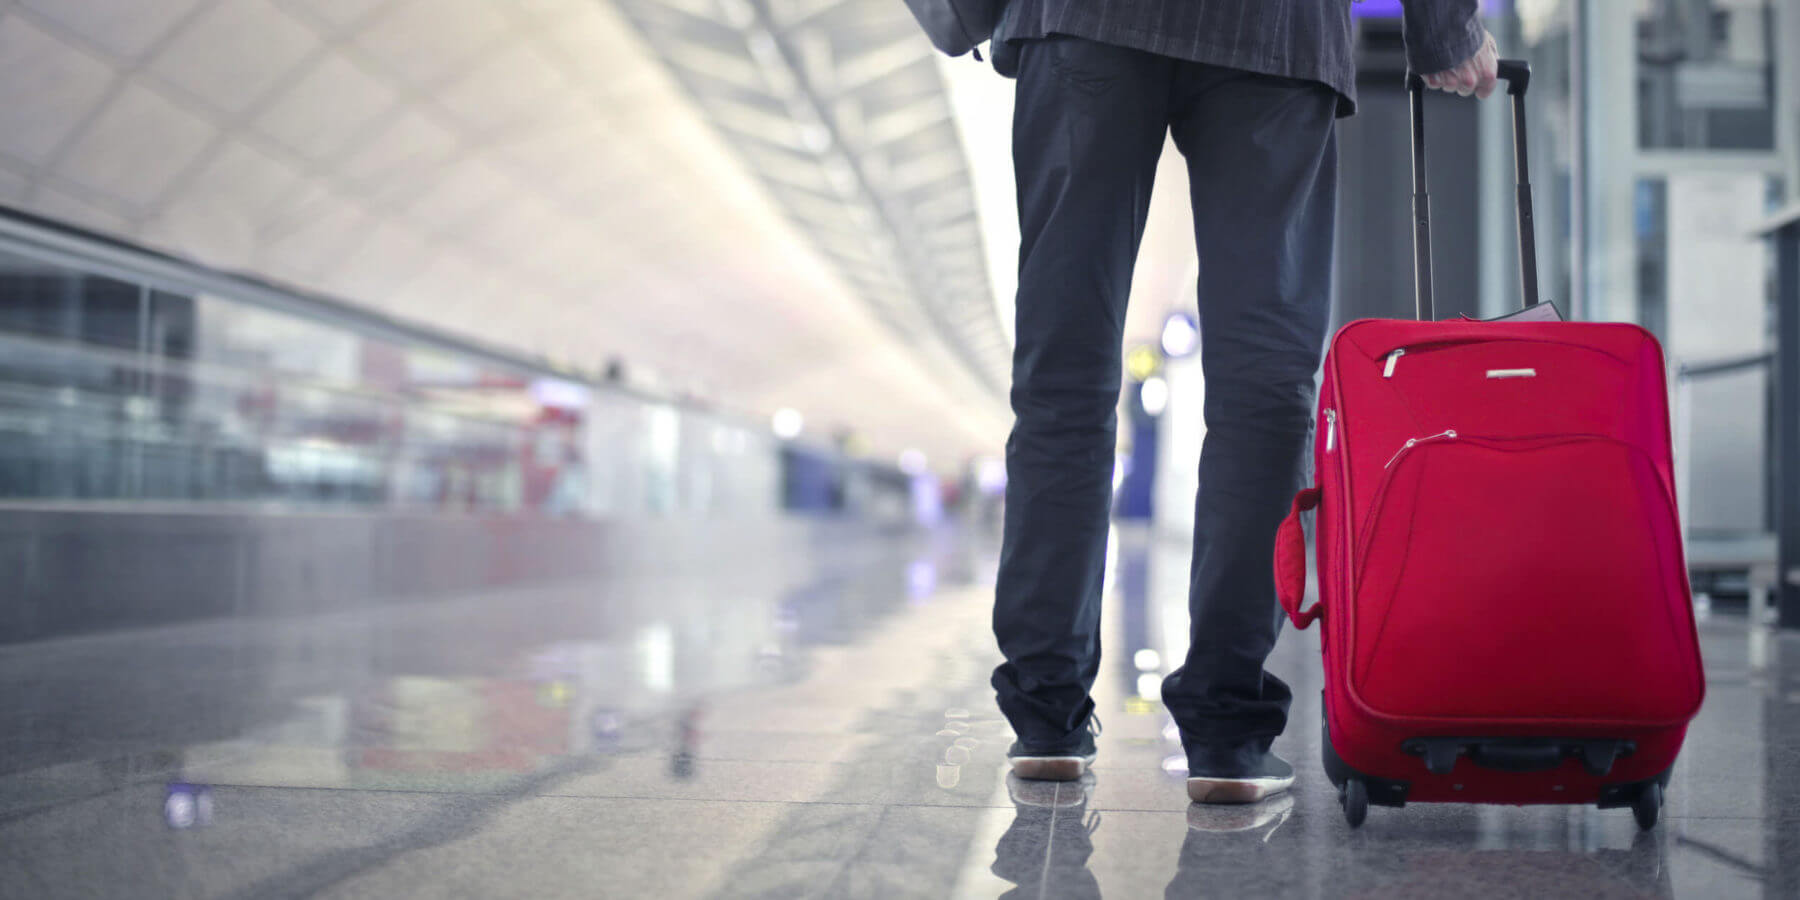 Want to keep business travelers safe? Then mandate your corporate travel policy.